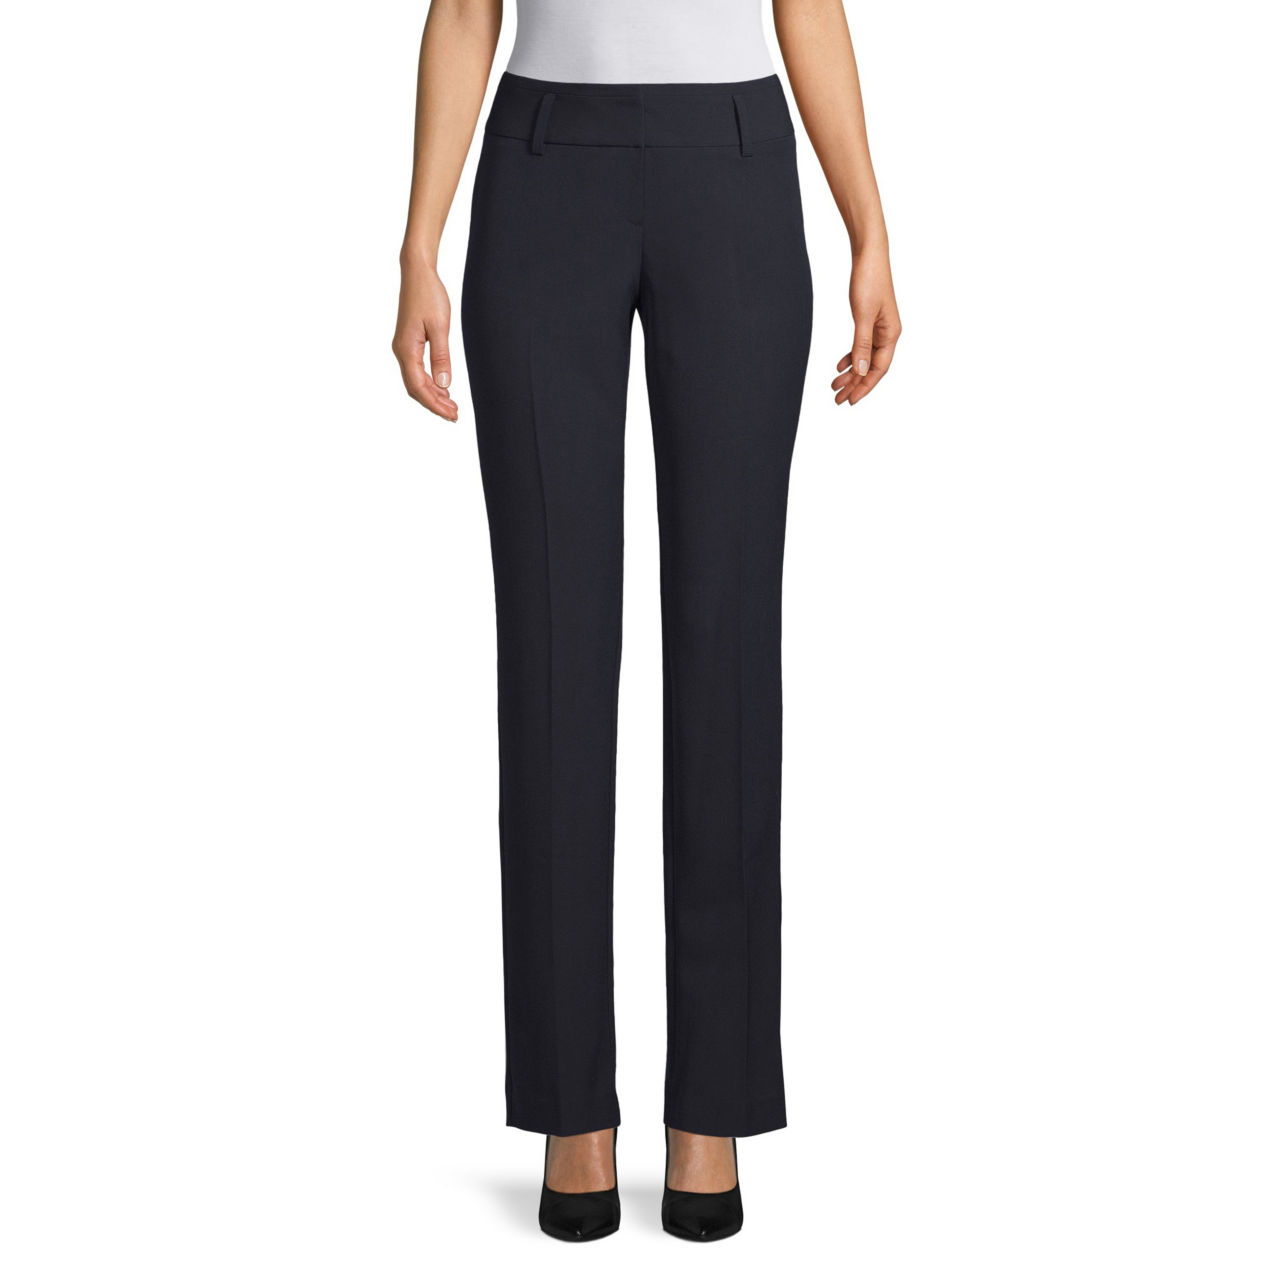 Women's Navy Pants